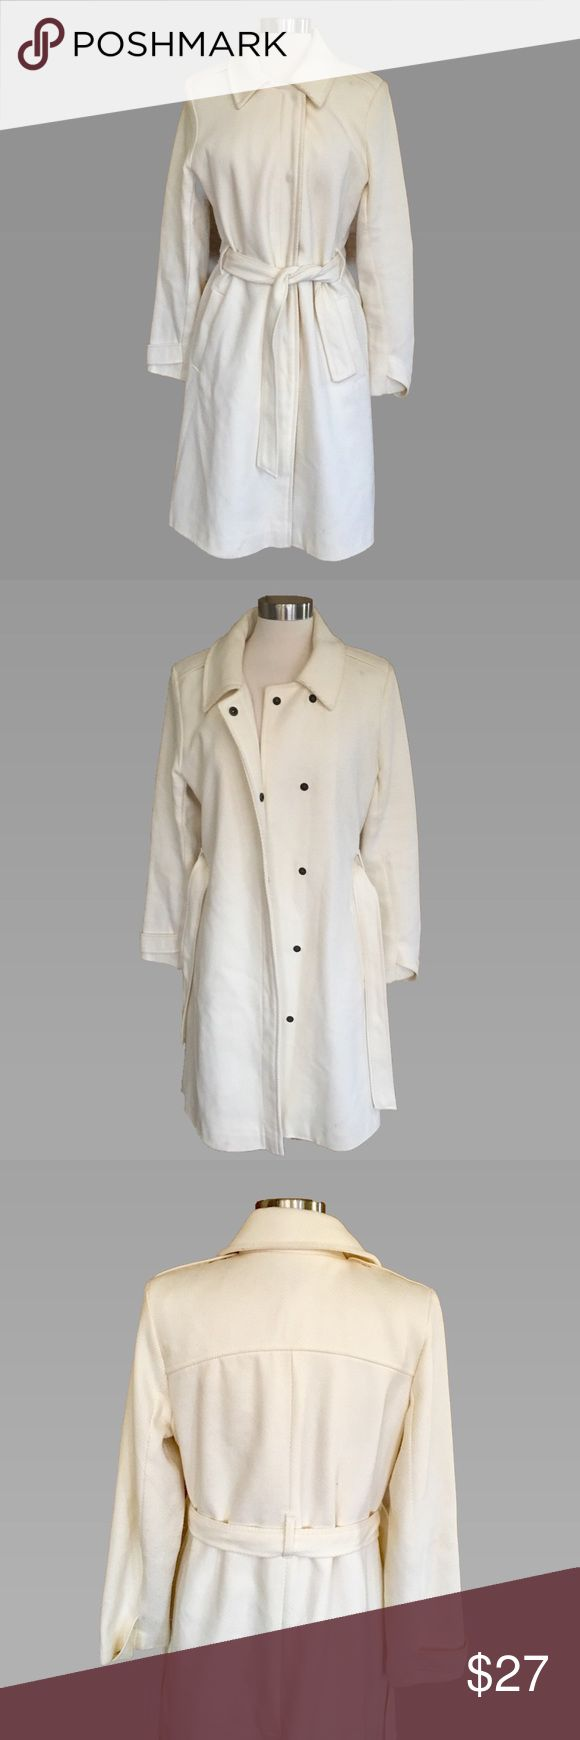 Old Navy Cream Belted Coat L Lovely Old Navy cream colored coat with belt and buttons. It's a lovely, light coat for spring or fall in a cotton blend. Or wear it on a mild winter's day for a winter white look. Size L.   In GUC, some pilling on the arms. Price reflects.   Measurements: Length: Pit to pit: Old Navy Jackets & Coats